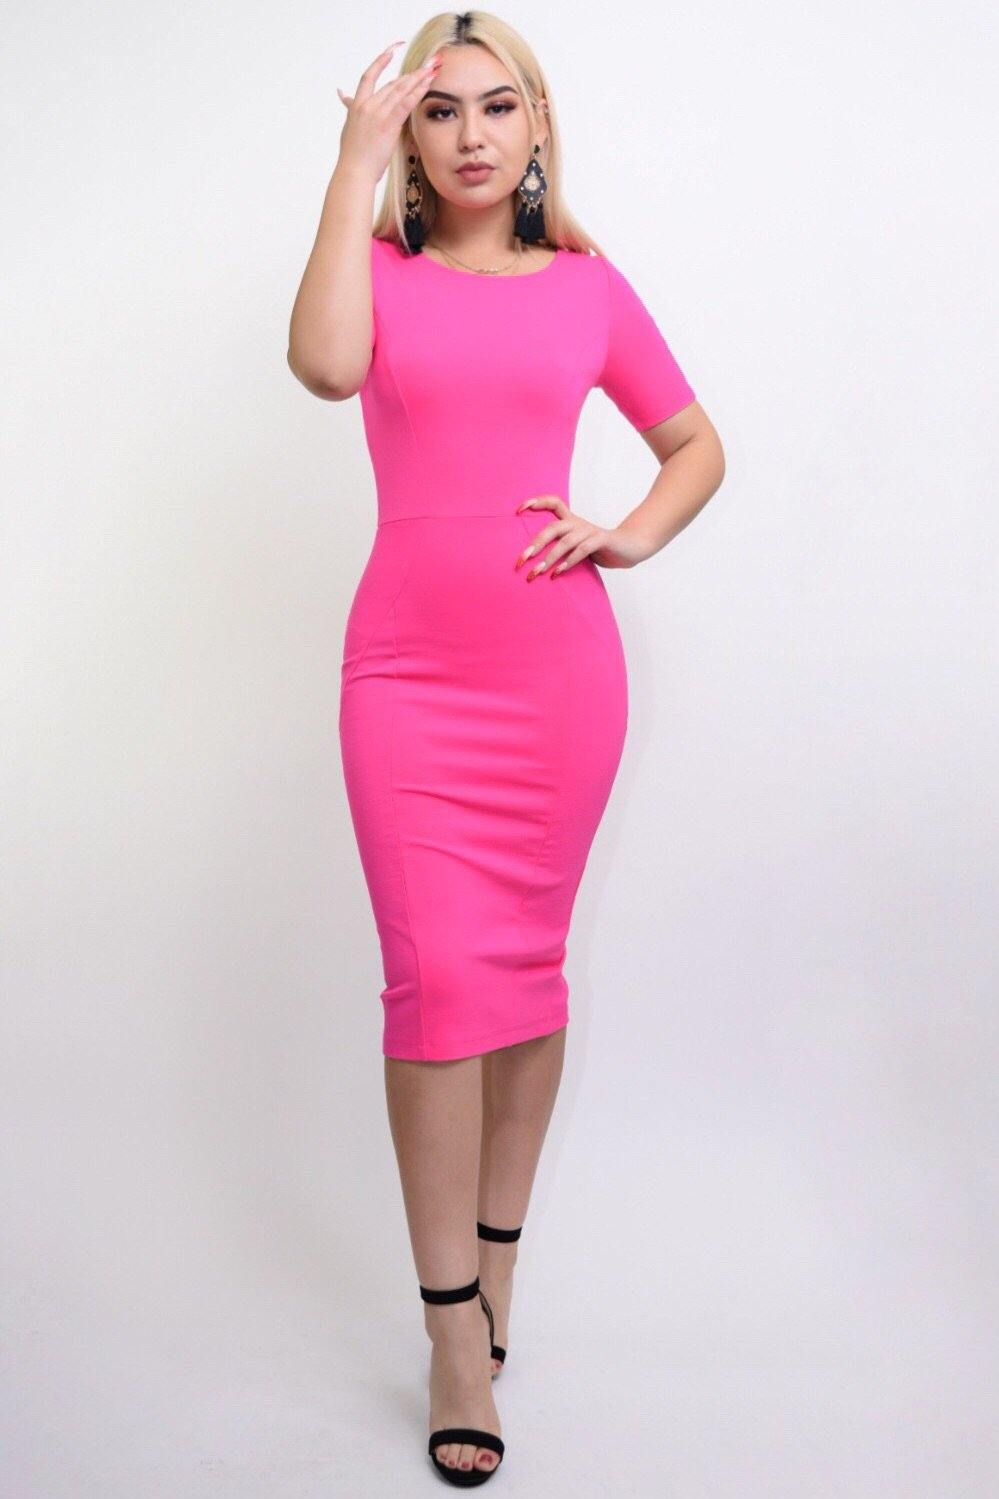 Jarrel hot pink bodycon middy dress